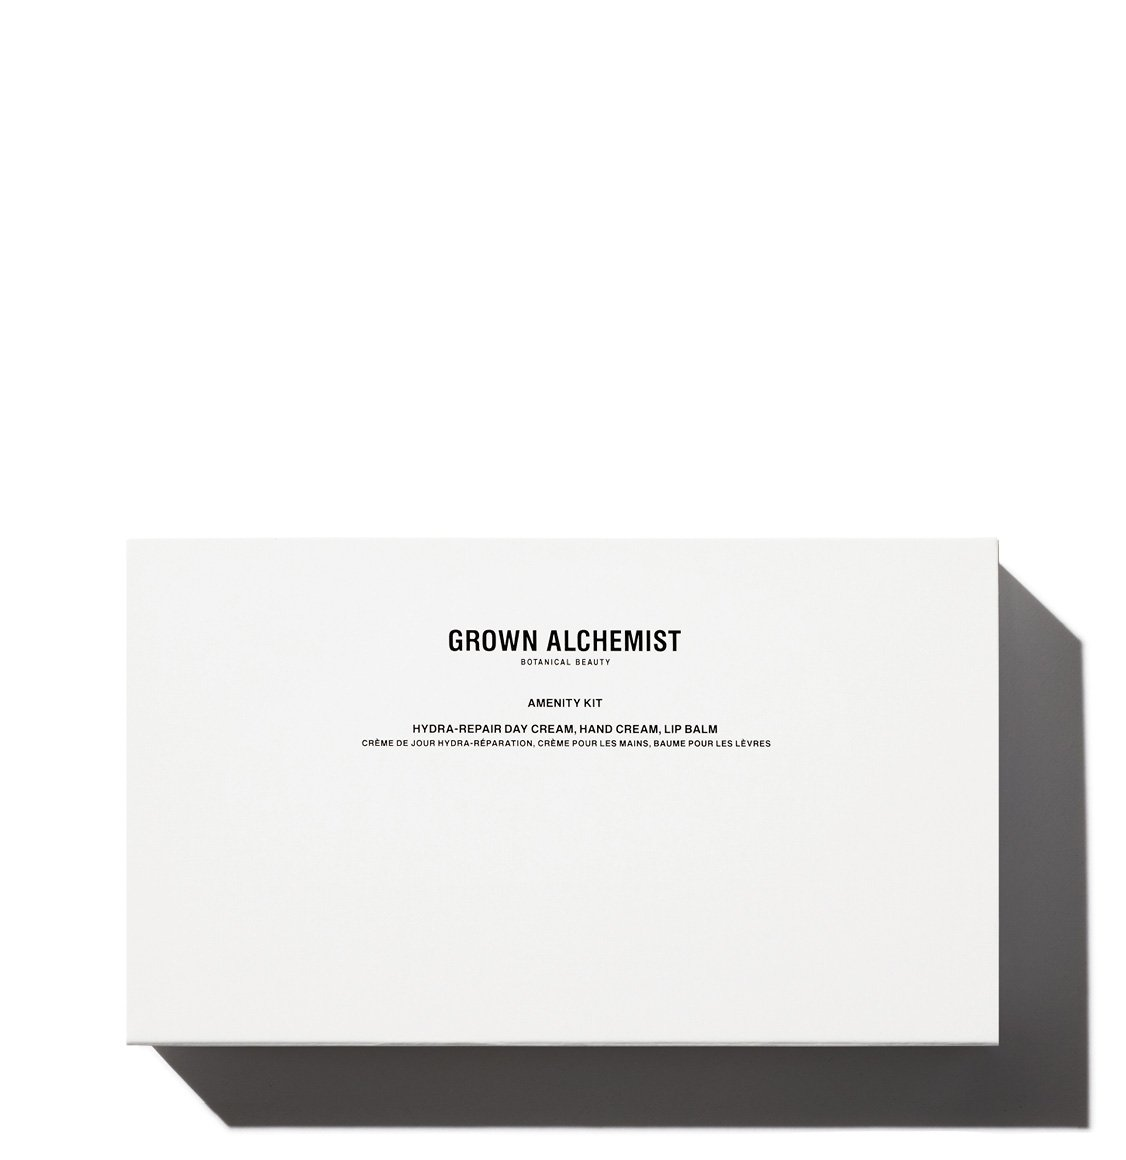 Grown Alchemist Day Cream 12ml Hand Cream 20ml Lip Balm 12ml Amenity Kit